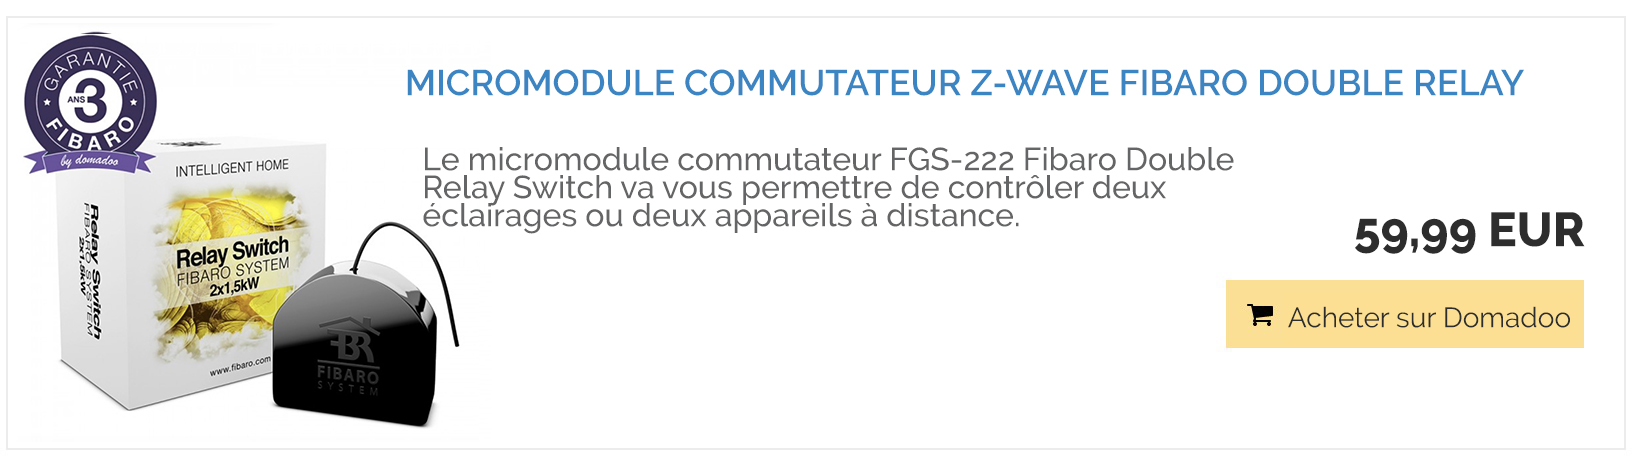 fibaro-relay-double-commutateur-domotique-promo